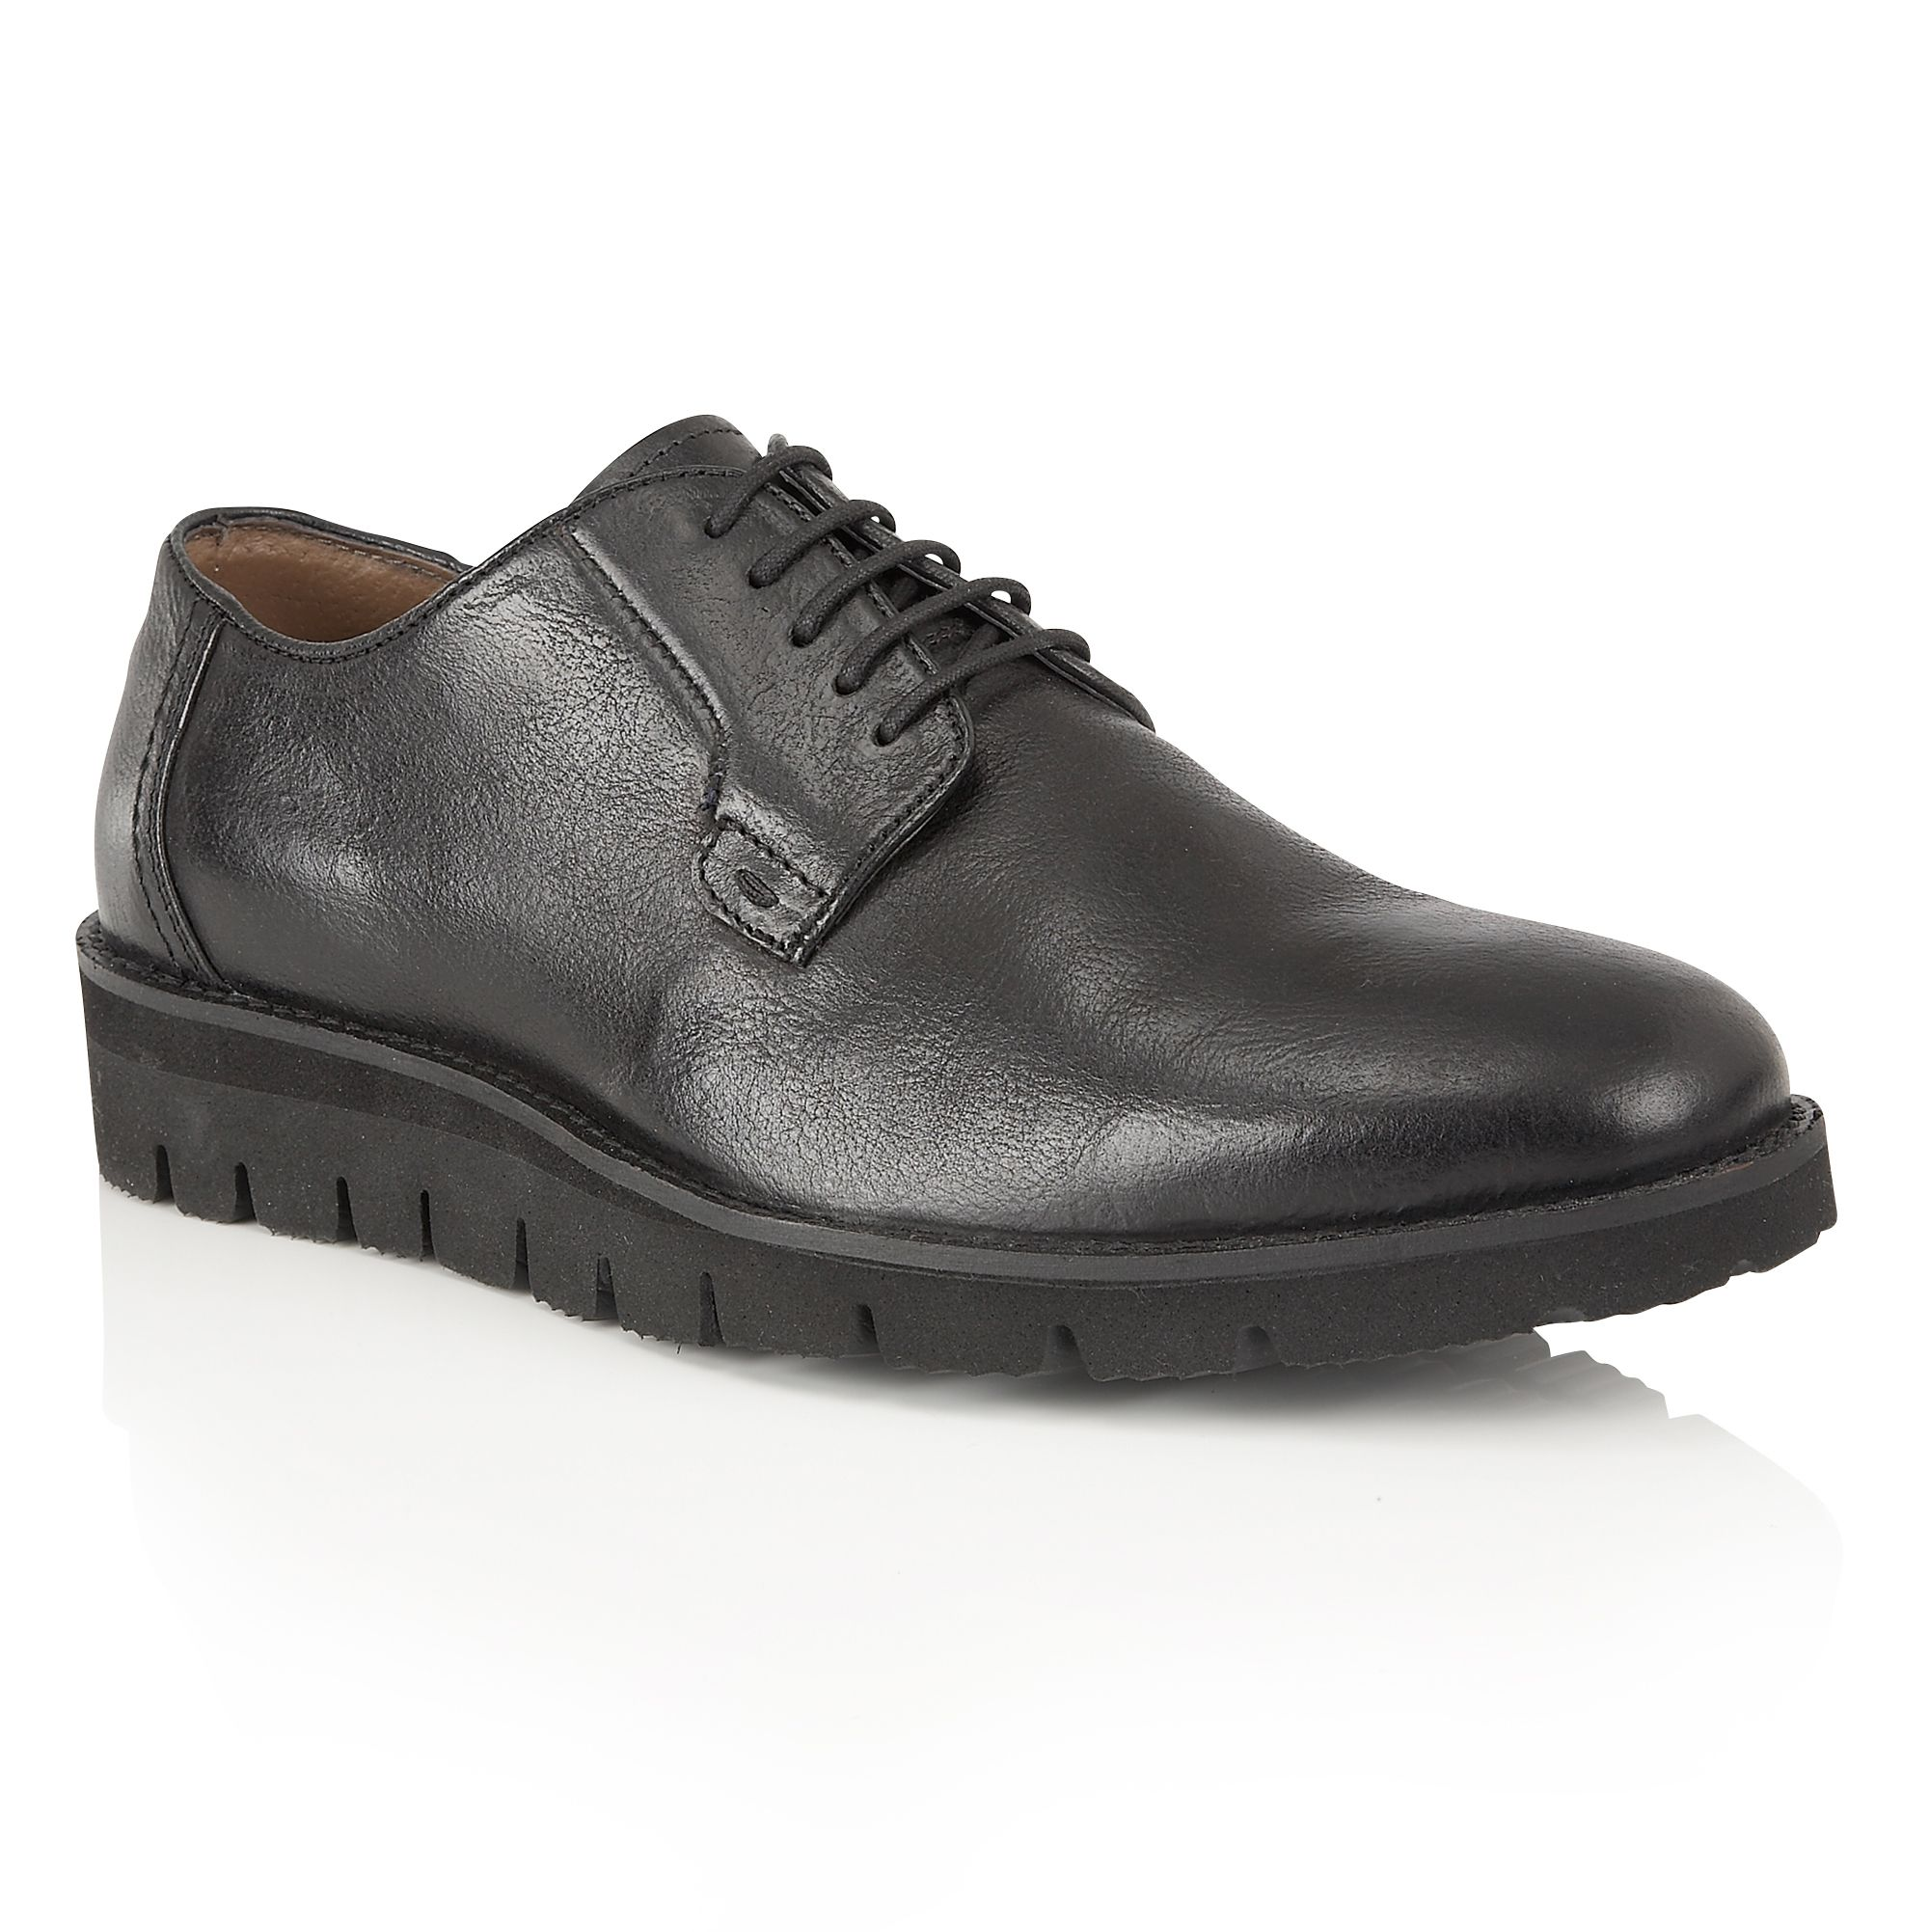 Frank Wright Frank Wright Manfred Mens Shoes, Black